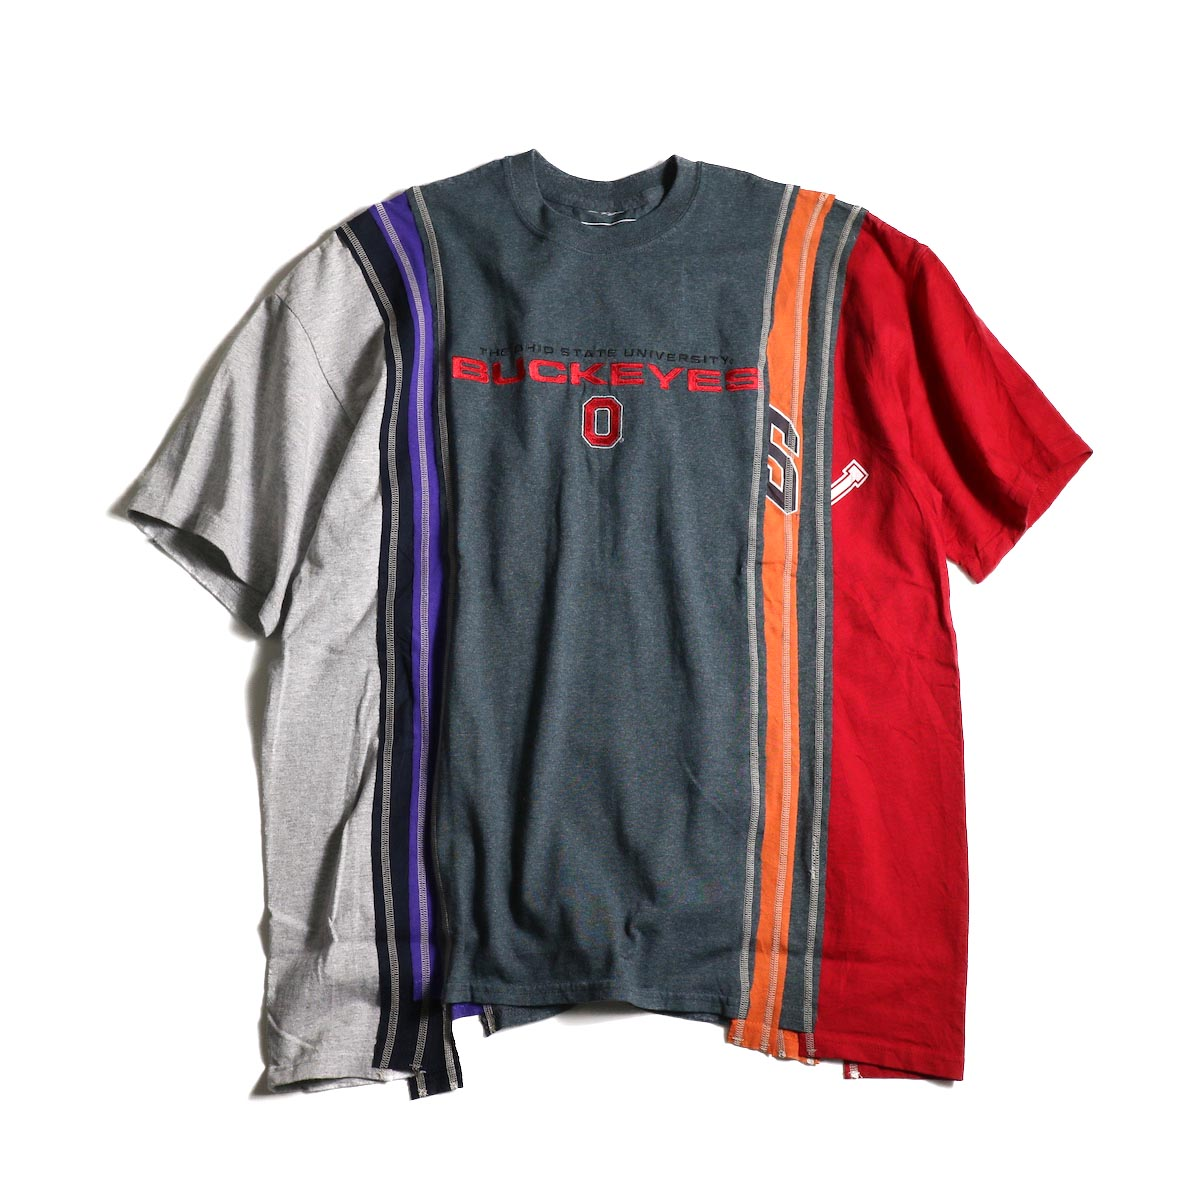 Rebuild by Needles / 7 Cuts Wide Tee - College (C)